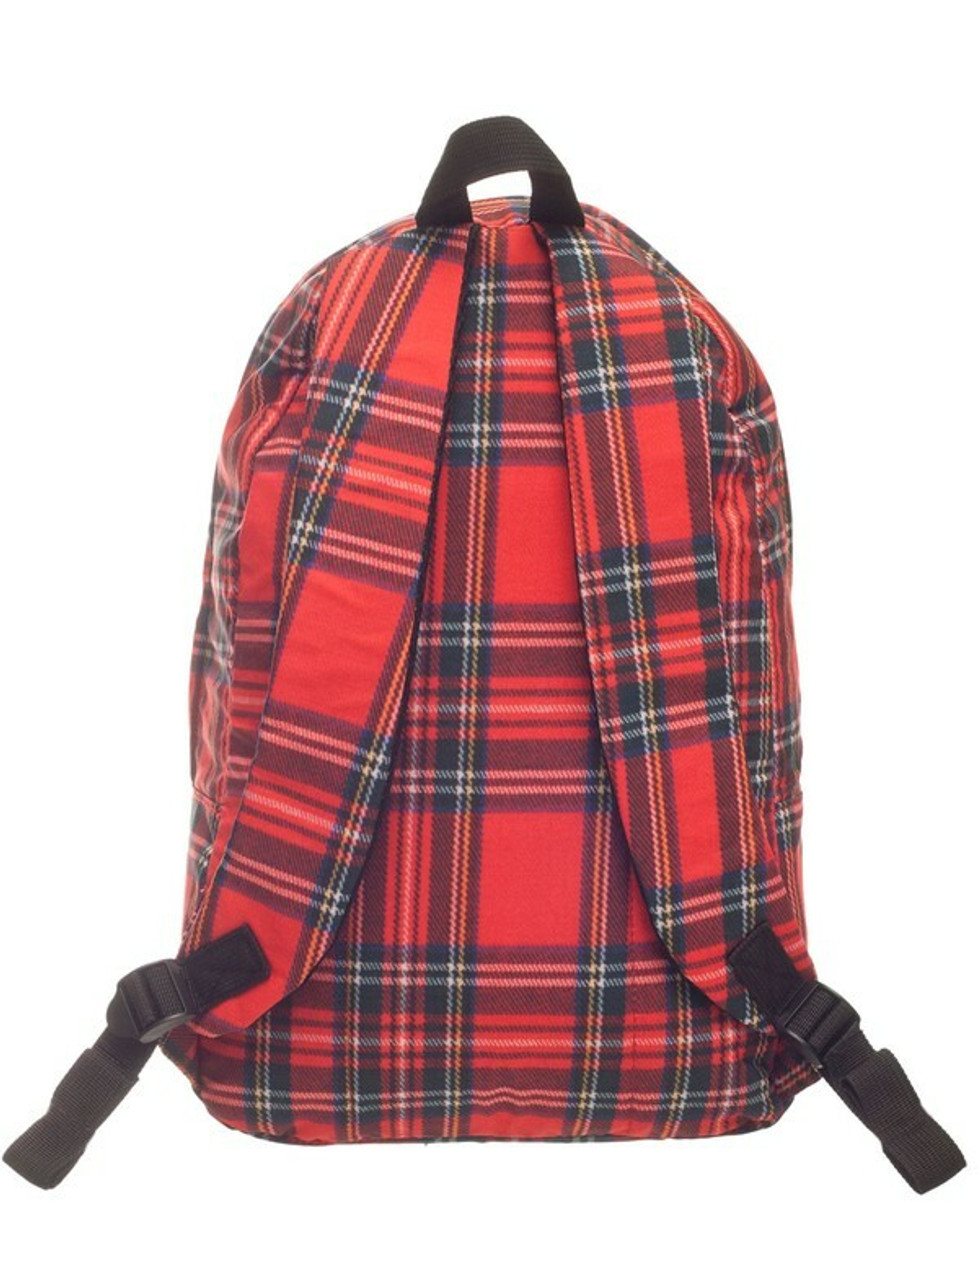 Back view of Red Tartan Plaid Graphic Print Backpack